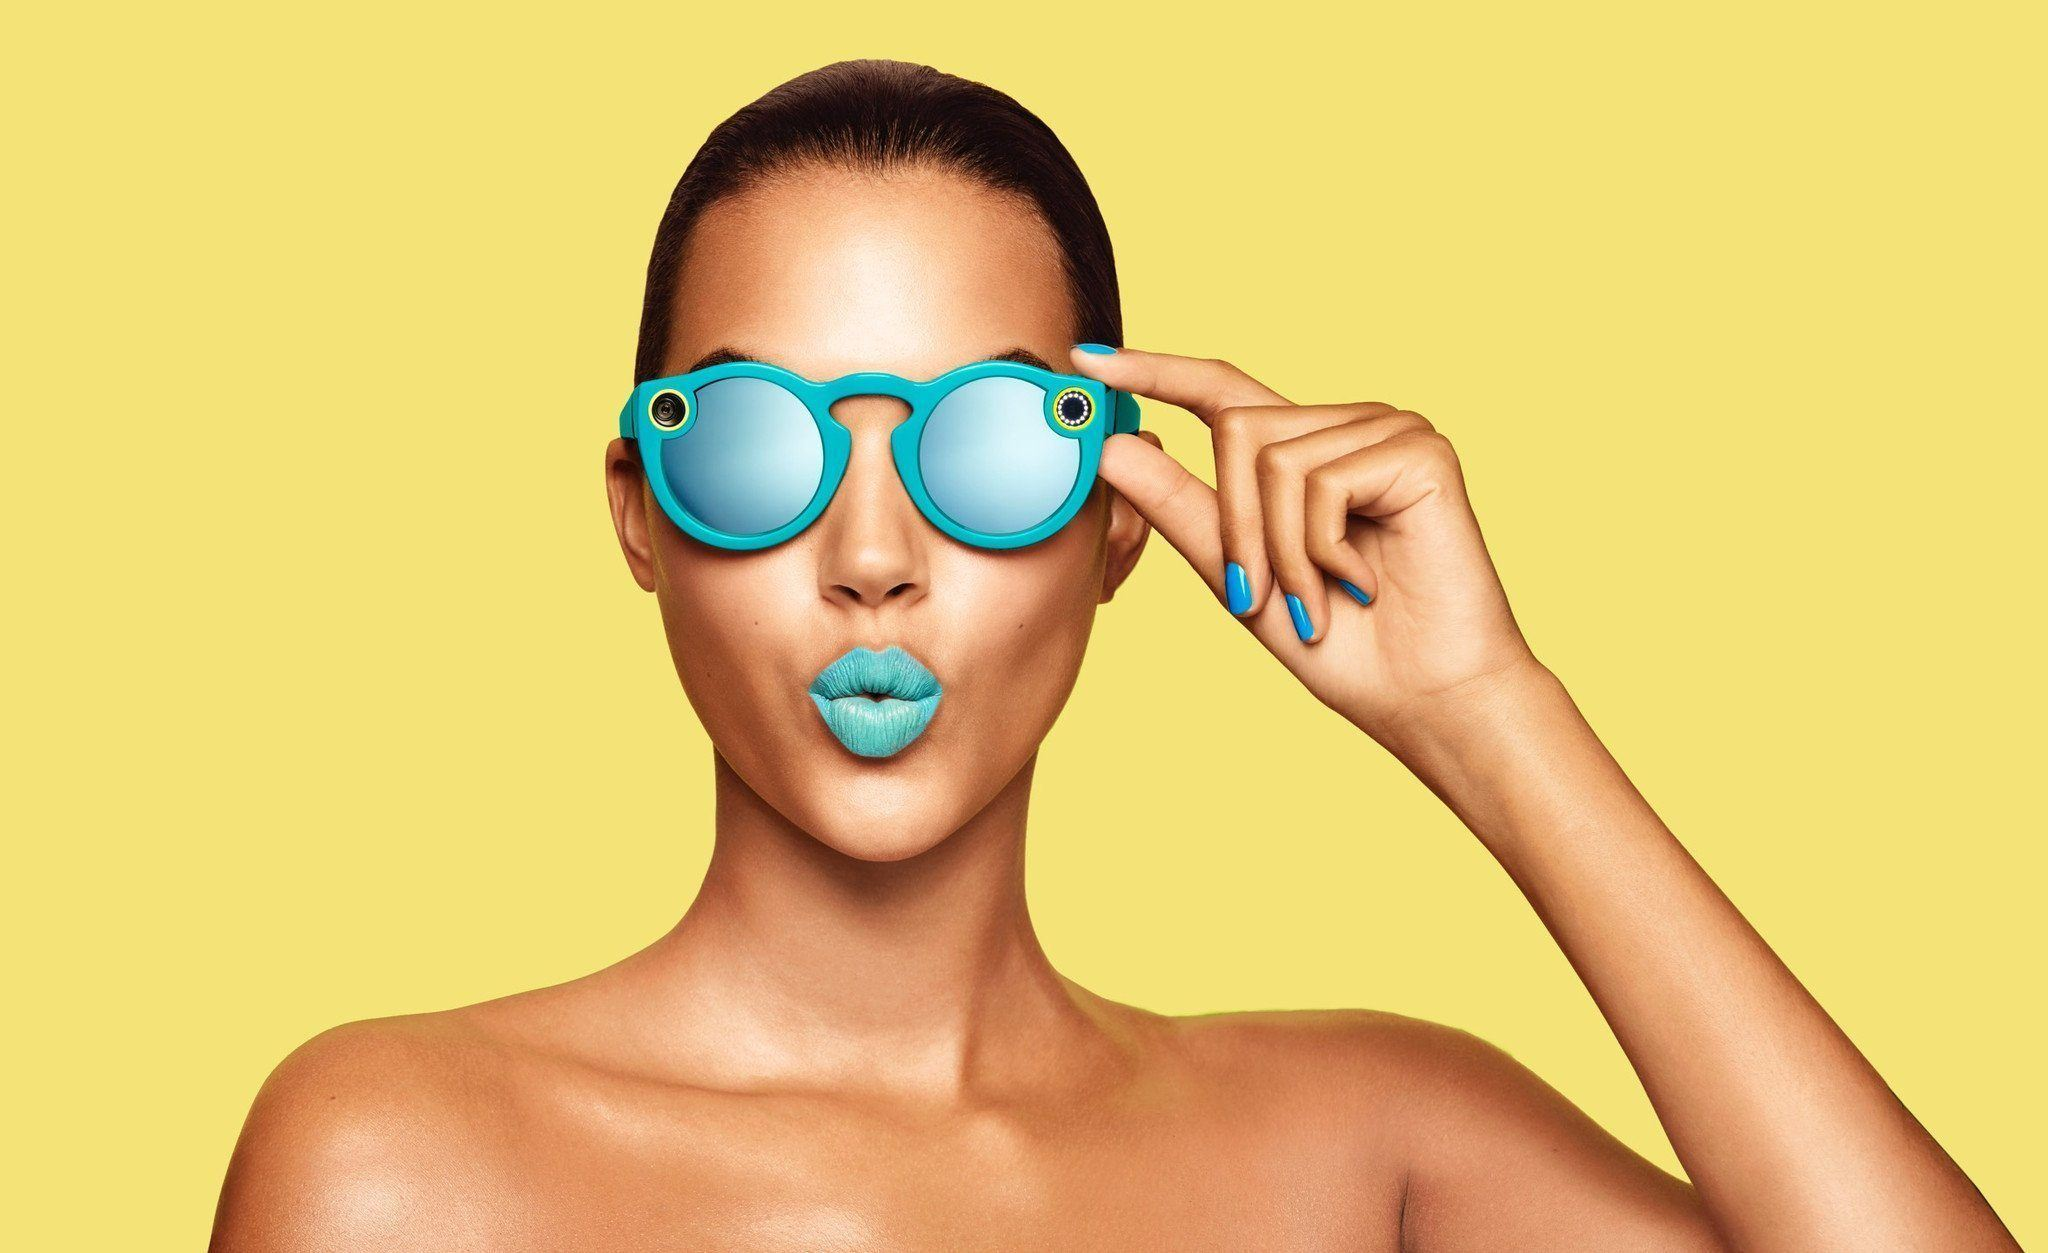 Snap's Spectacles: A new way to see and share your life in social media